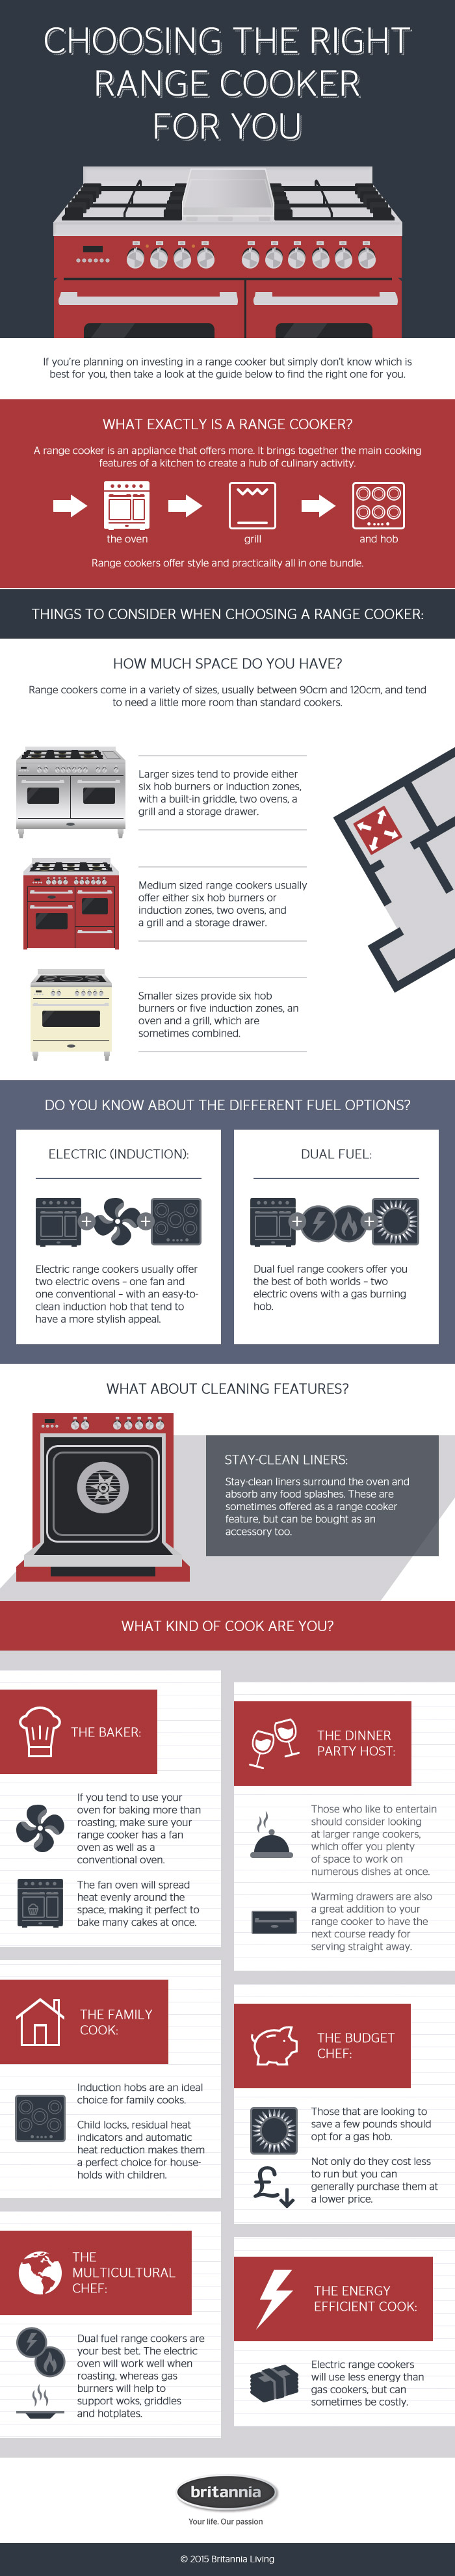 Choosing the Right Range Cooker For You